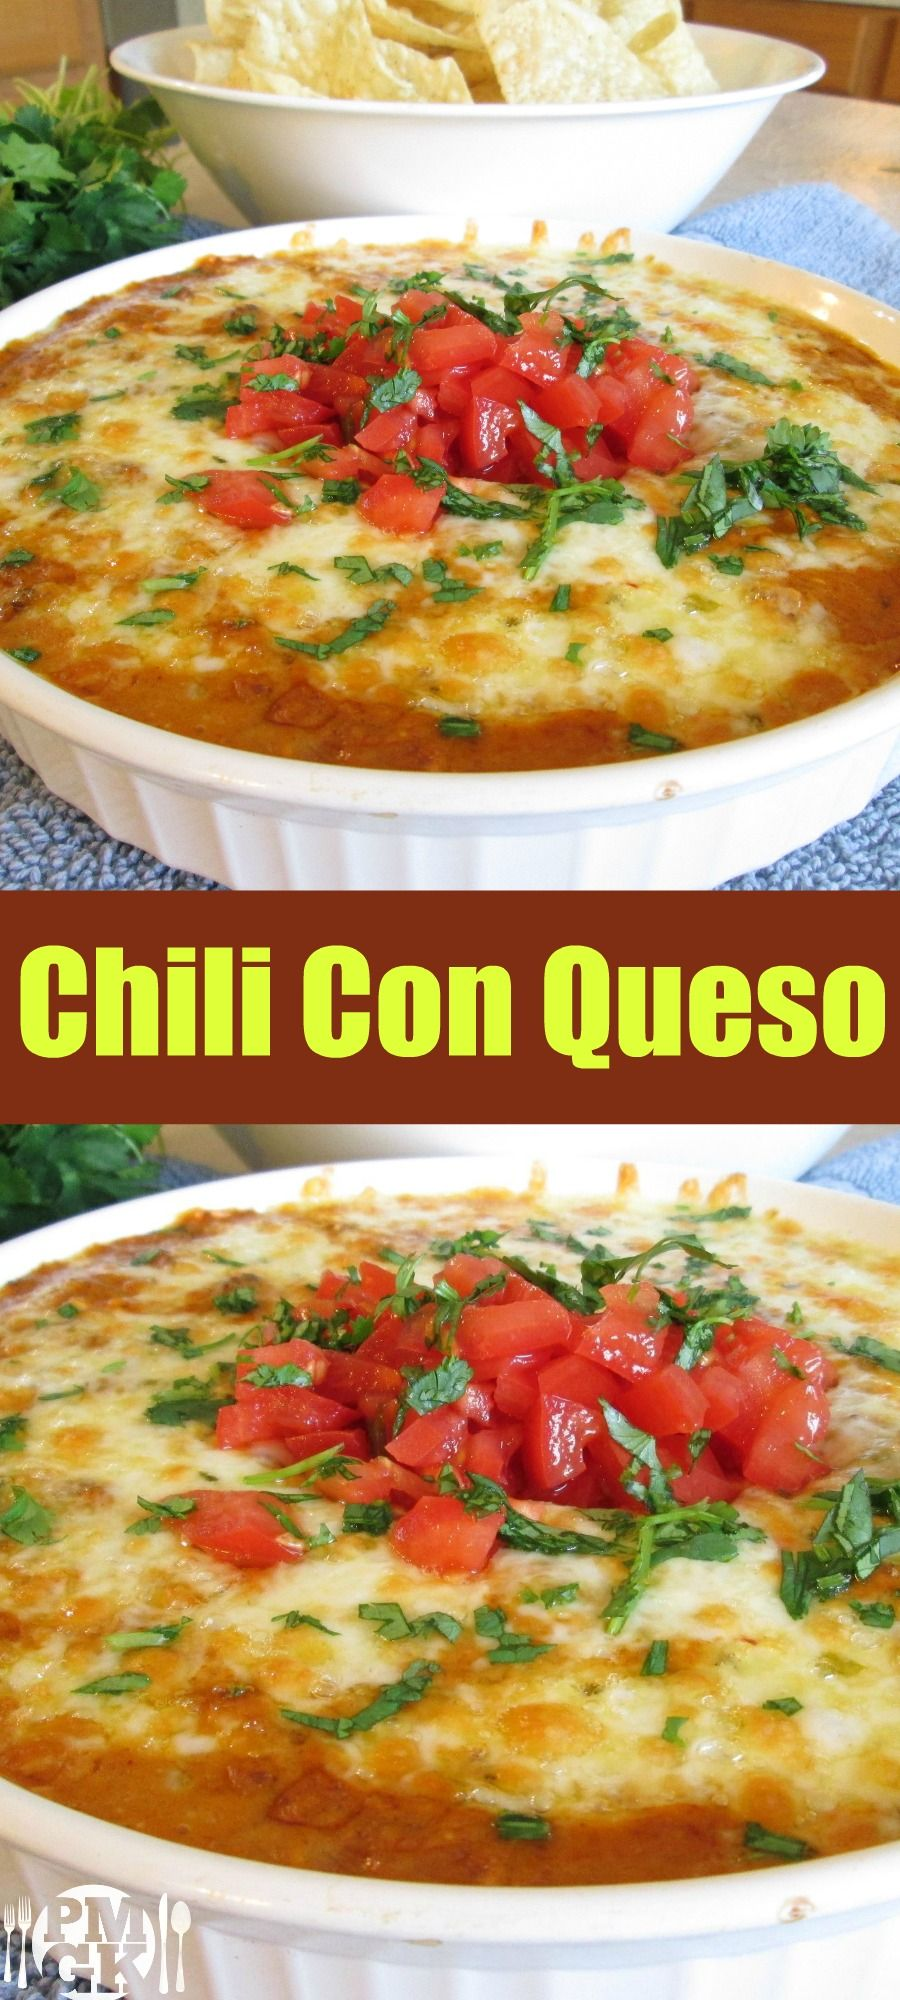 3 cheese chili con queso gourmet salsa and american food recipes food forumfinder Choice Image